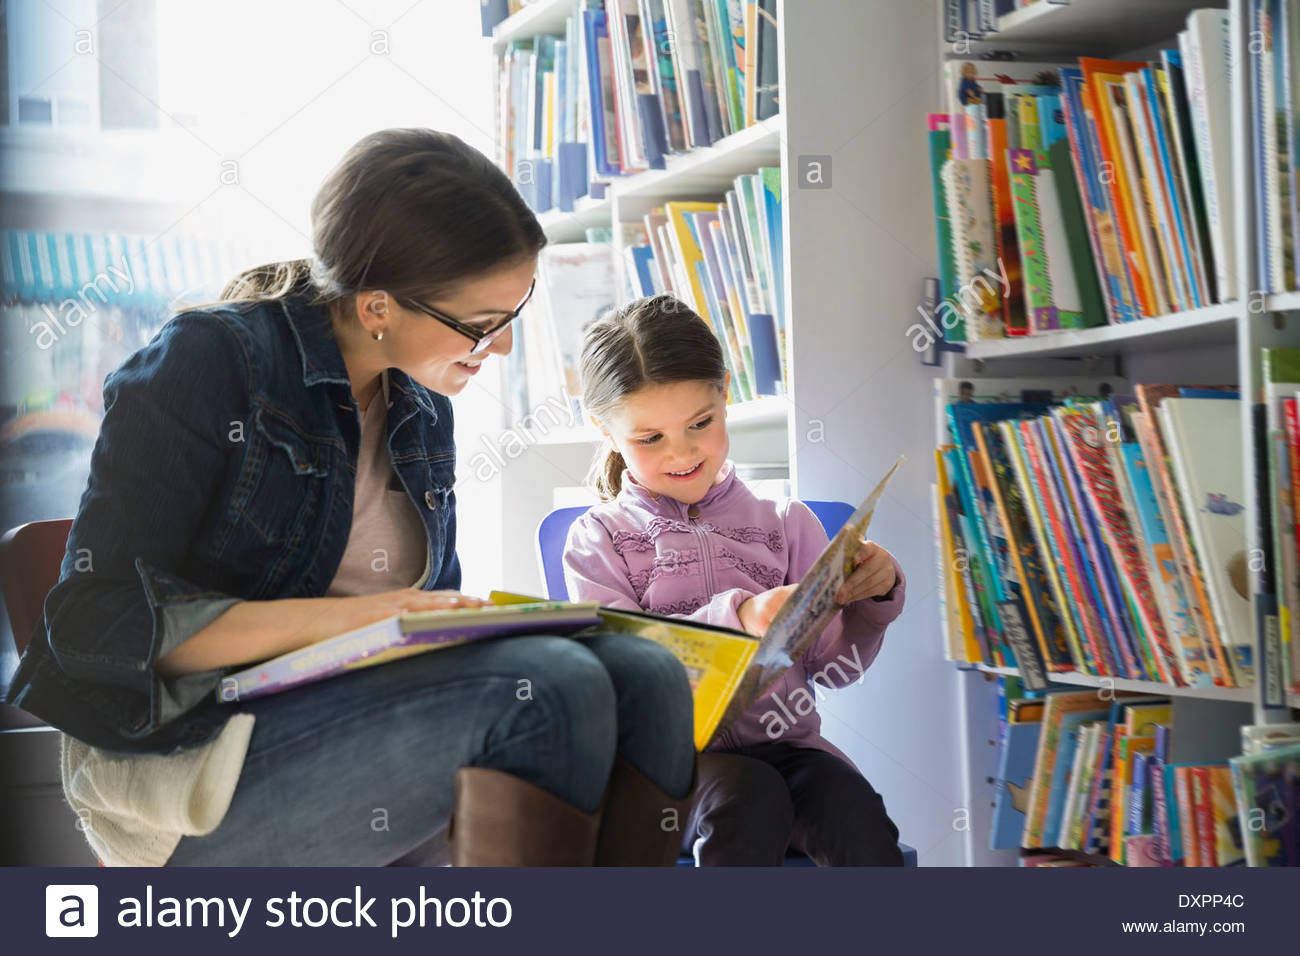 Mother and Daughter reading book in bookstore Photo Stock